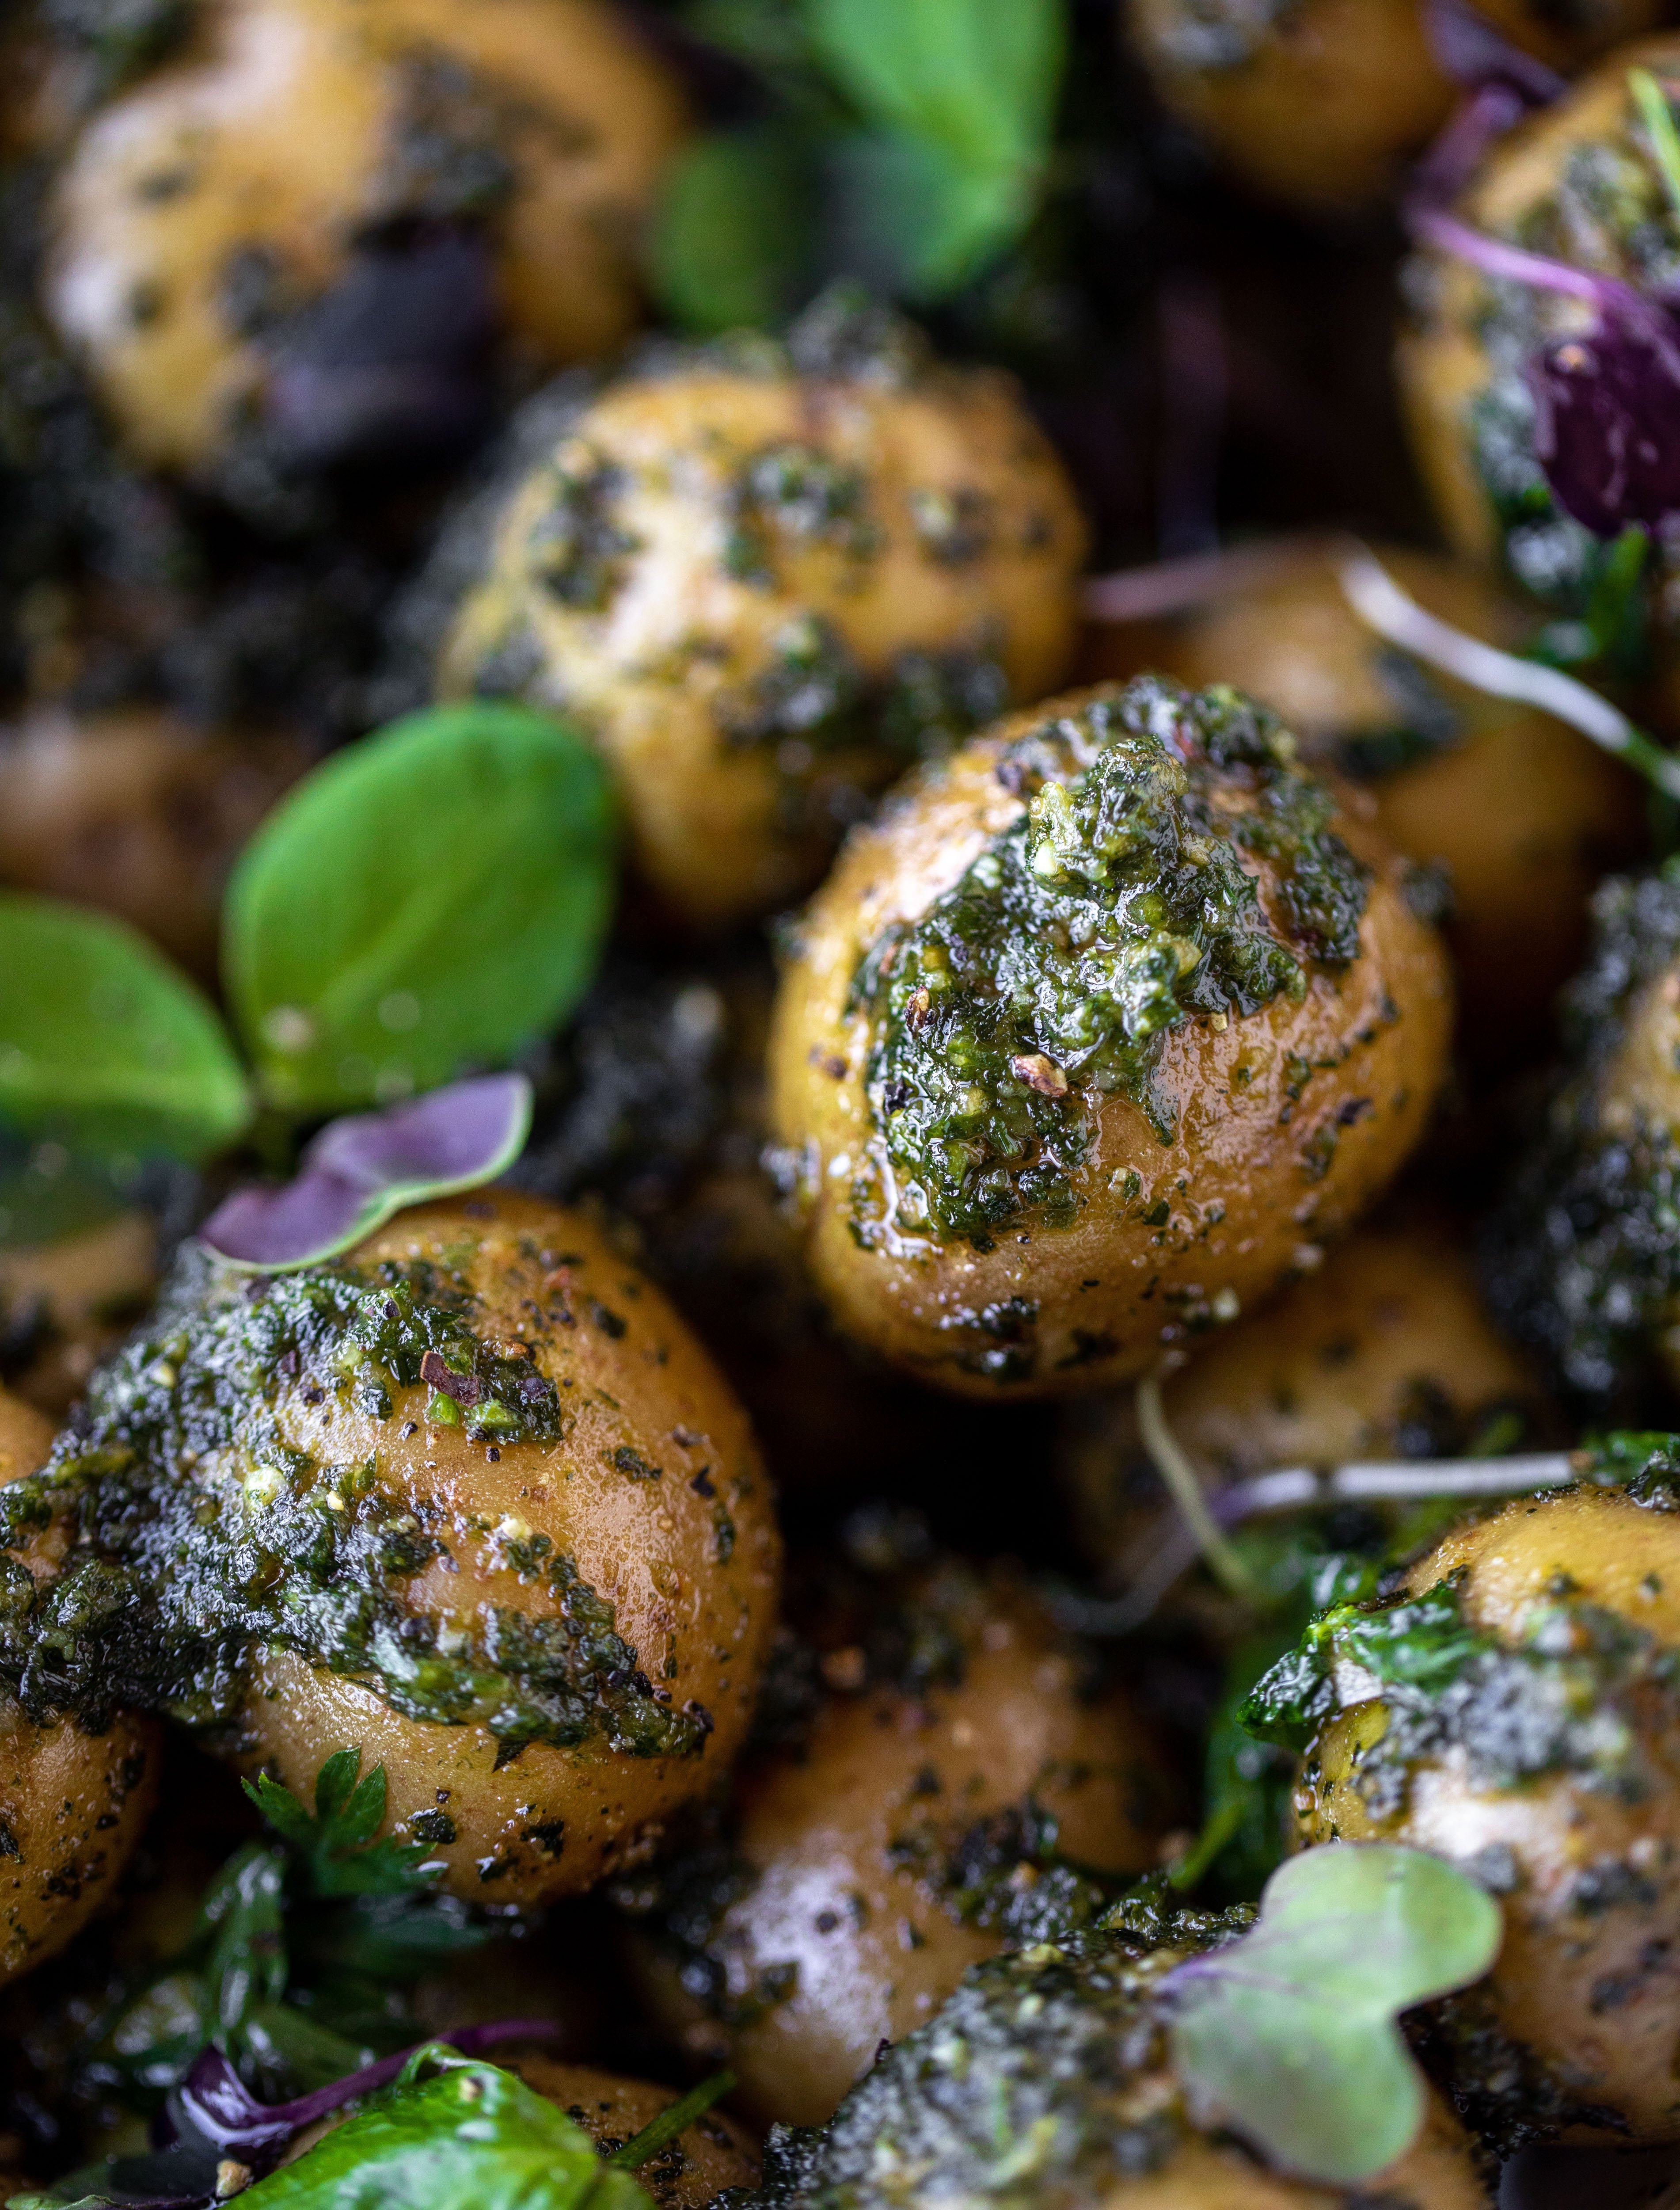 This pesto potato salad is made with carrot top pesto for the perfect spring side dish! Baby potatoes, pesto and greens make up this delish bowl.